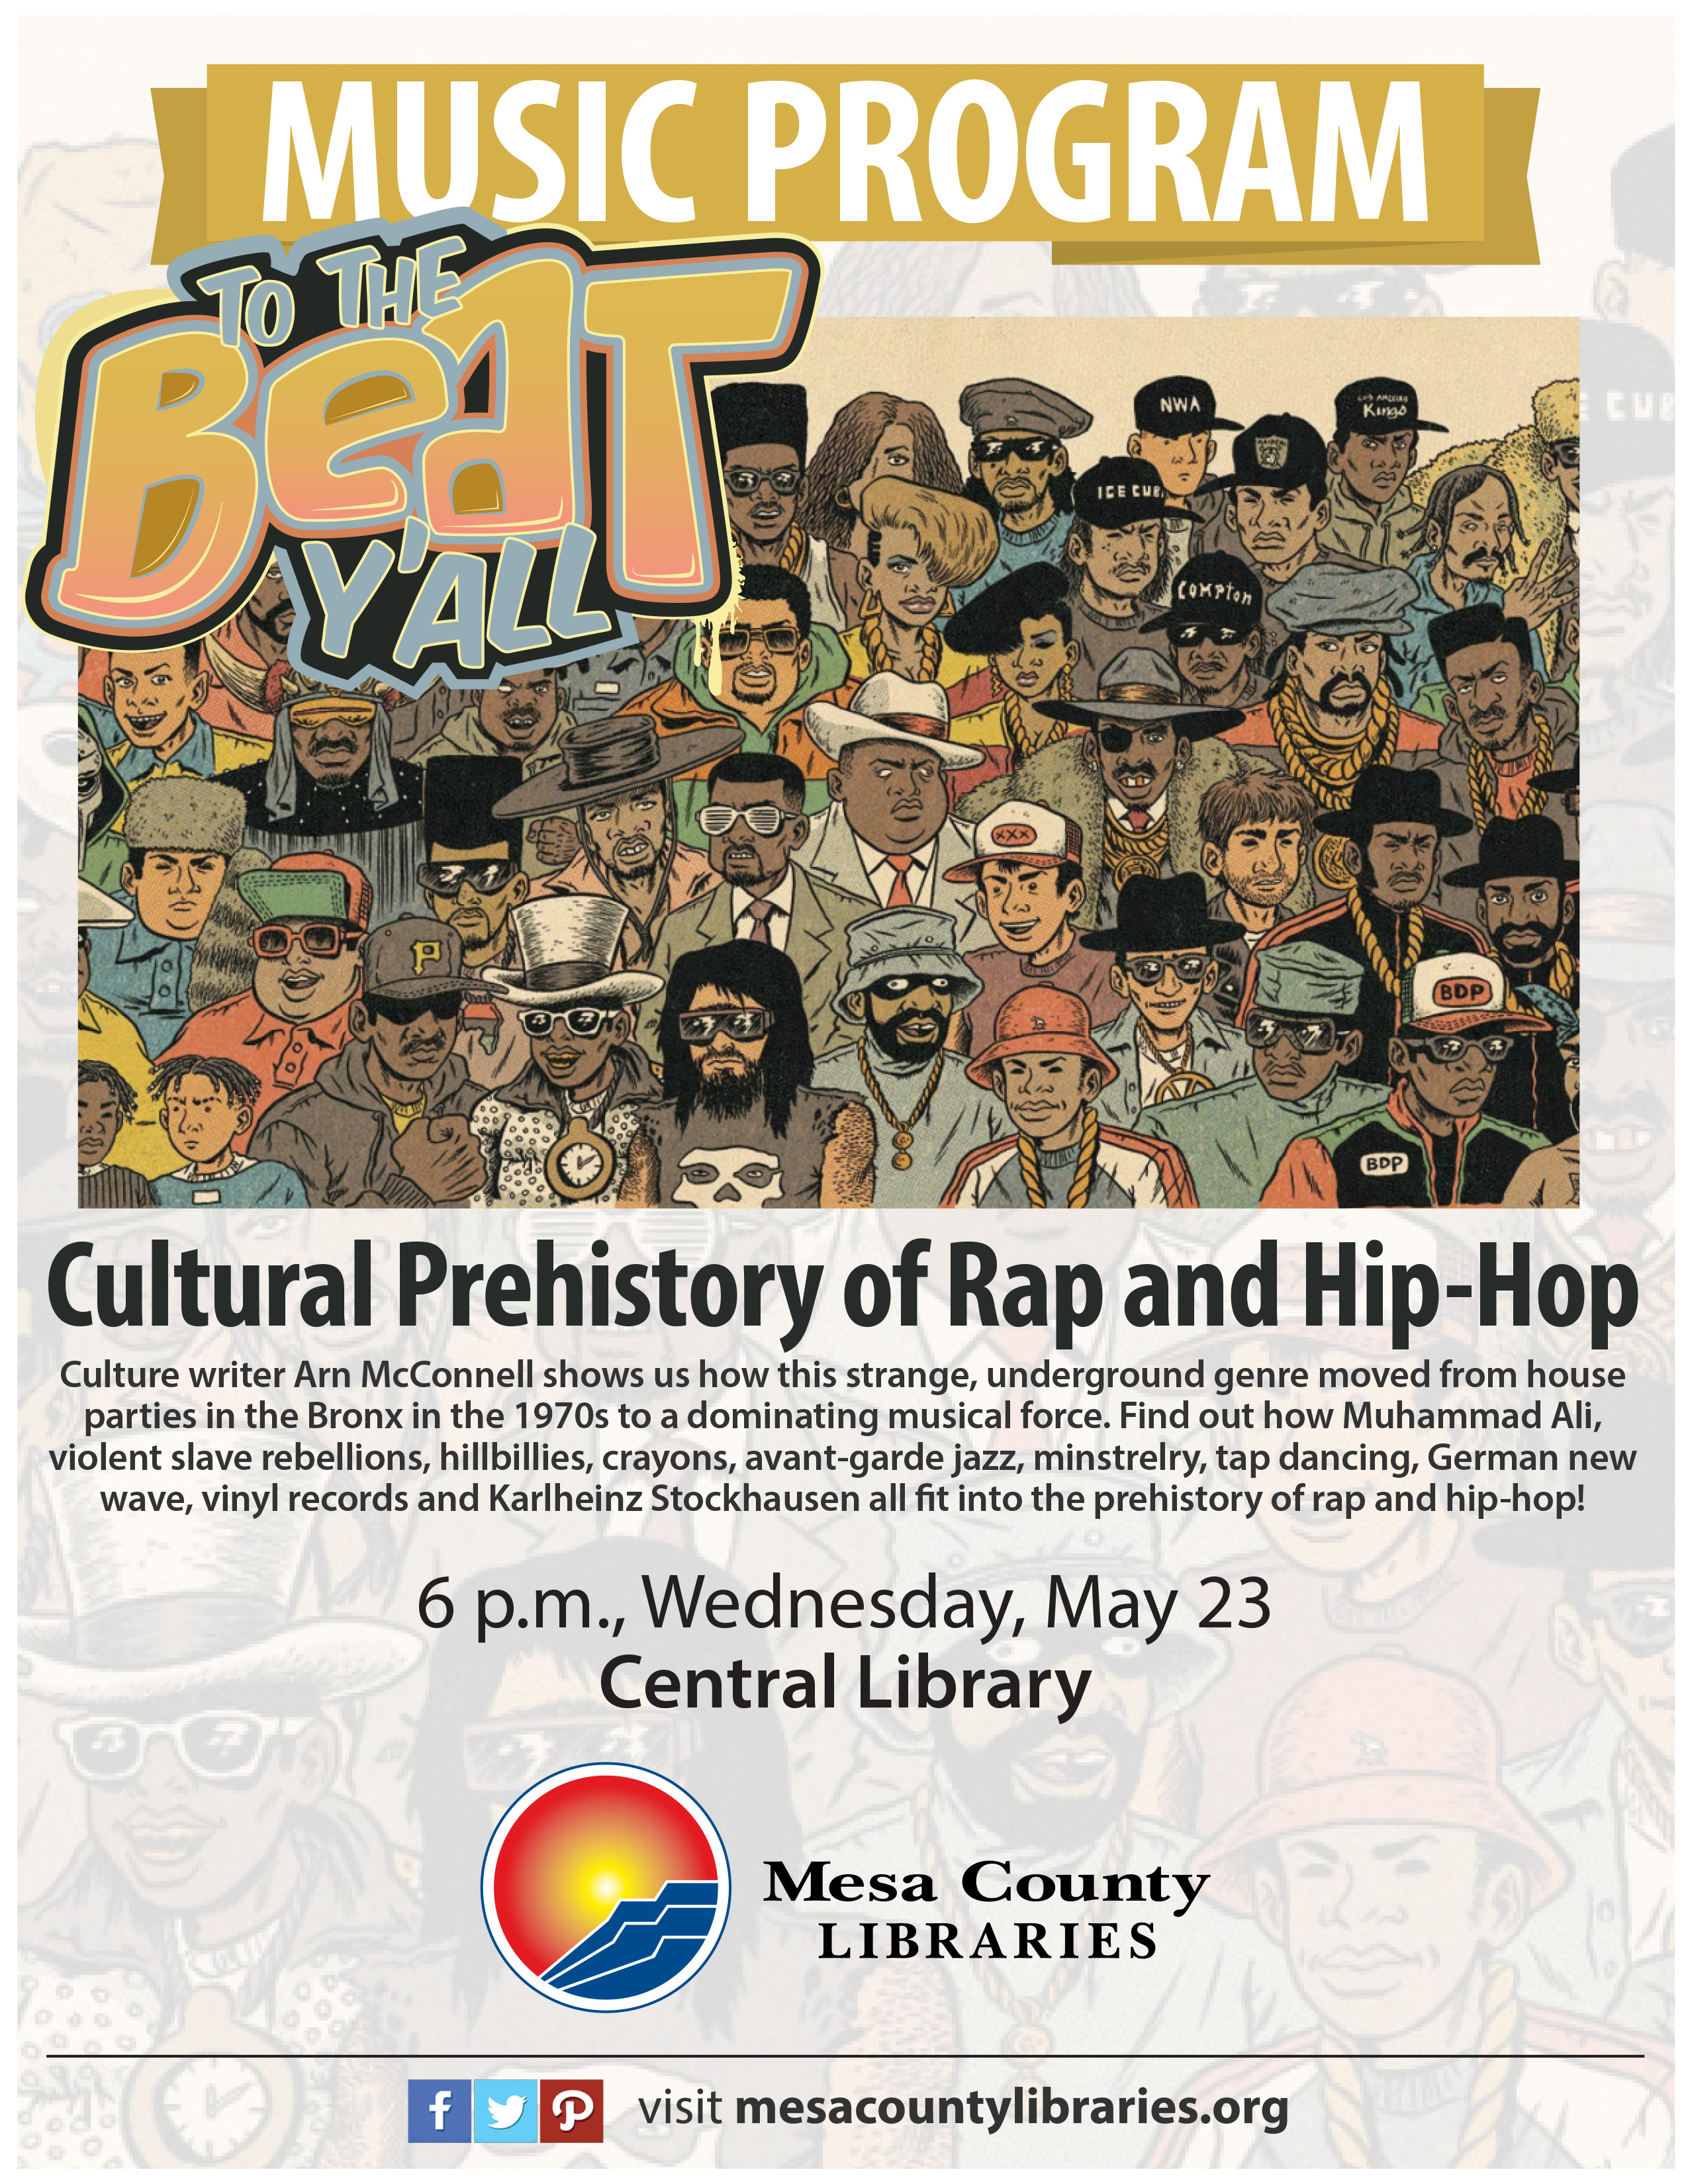 To the Beat, Y'all: A Cultural Prehistory of Rap and Hip-Hop